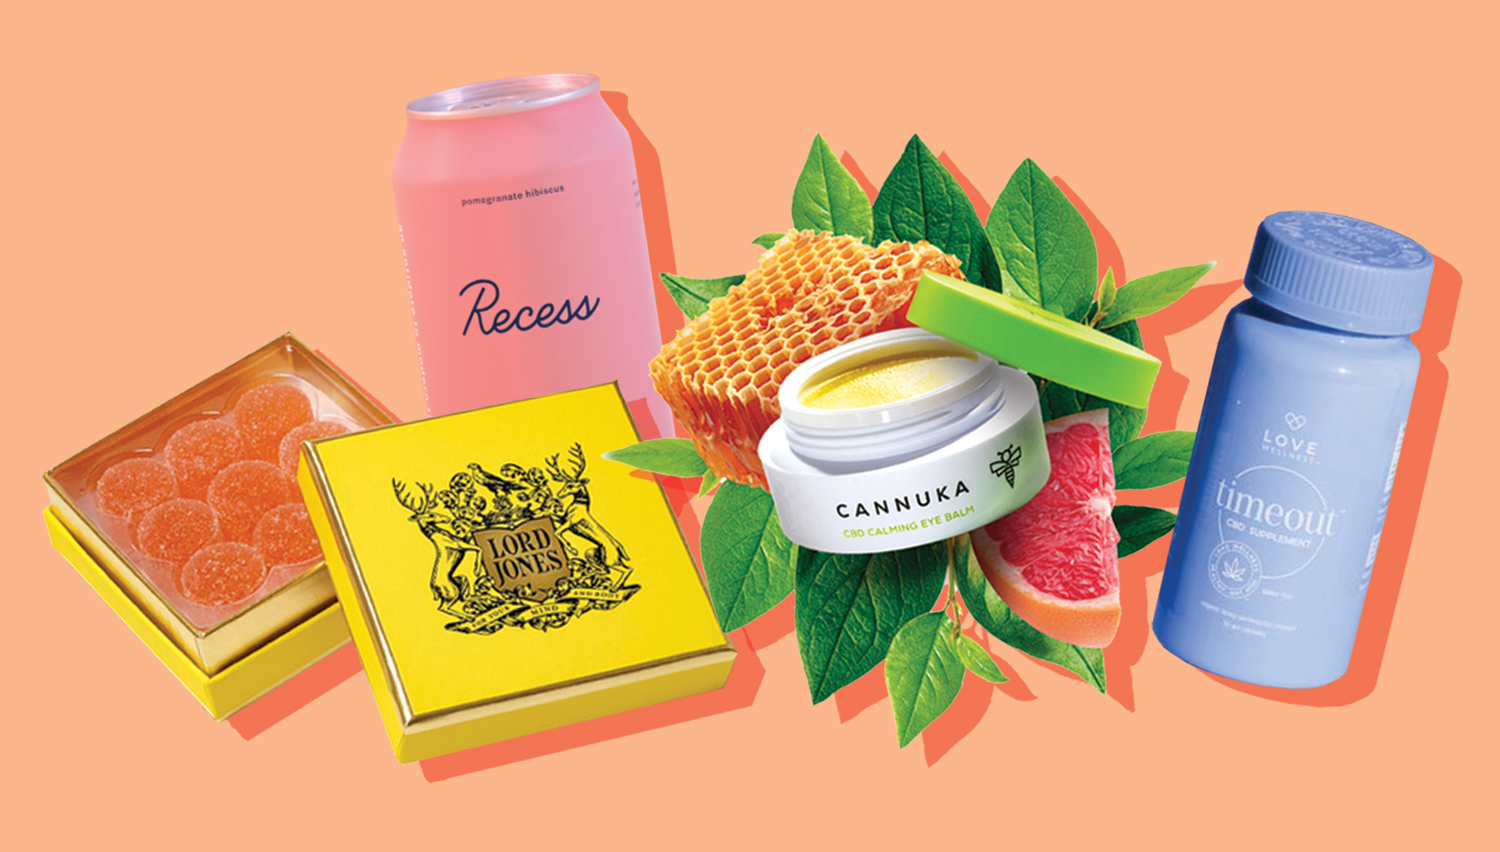 rise and shine, it's cbd time! - We've gathered a few of our favorite CBD brands recommended to help relieve your anxiety and pain, improve your wellness and beauty routine or maximize your chill session!